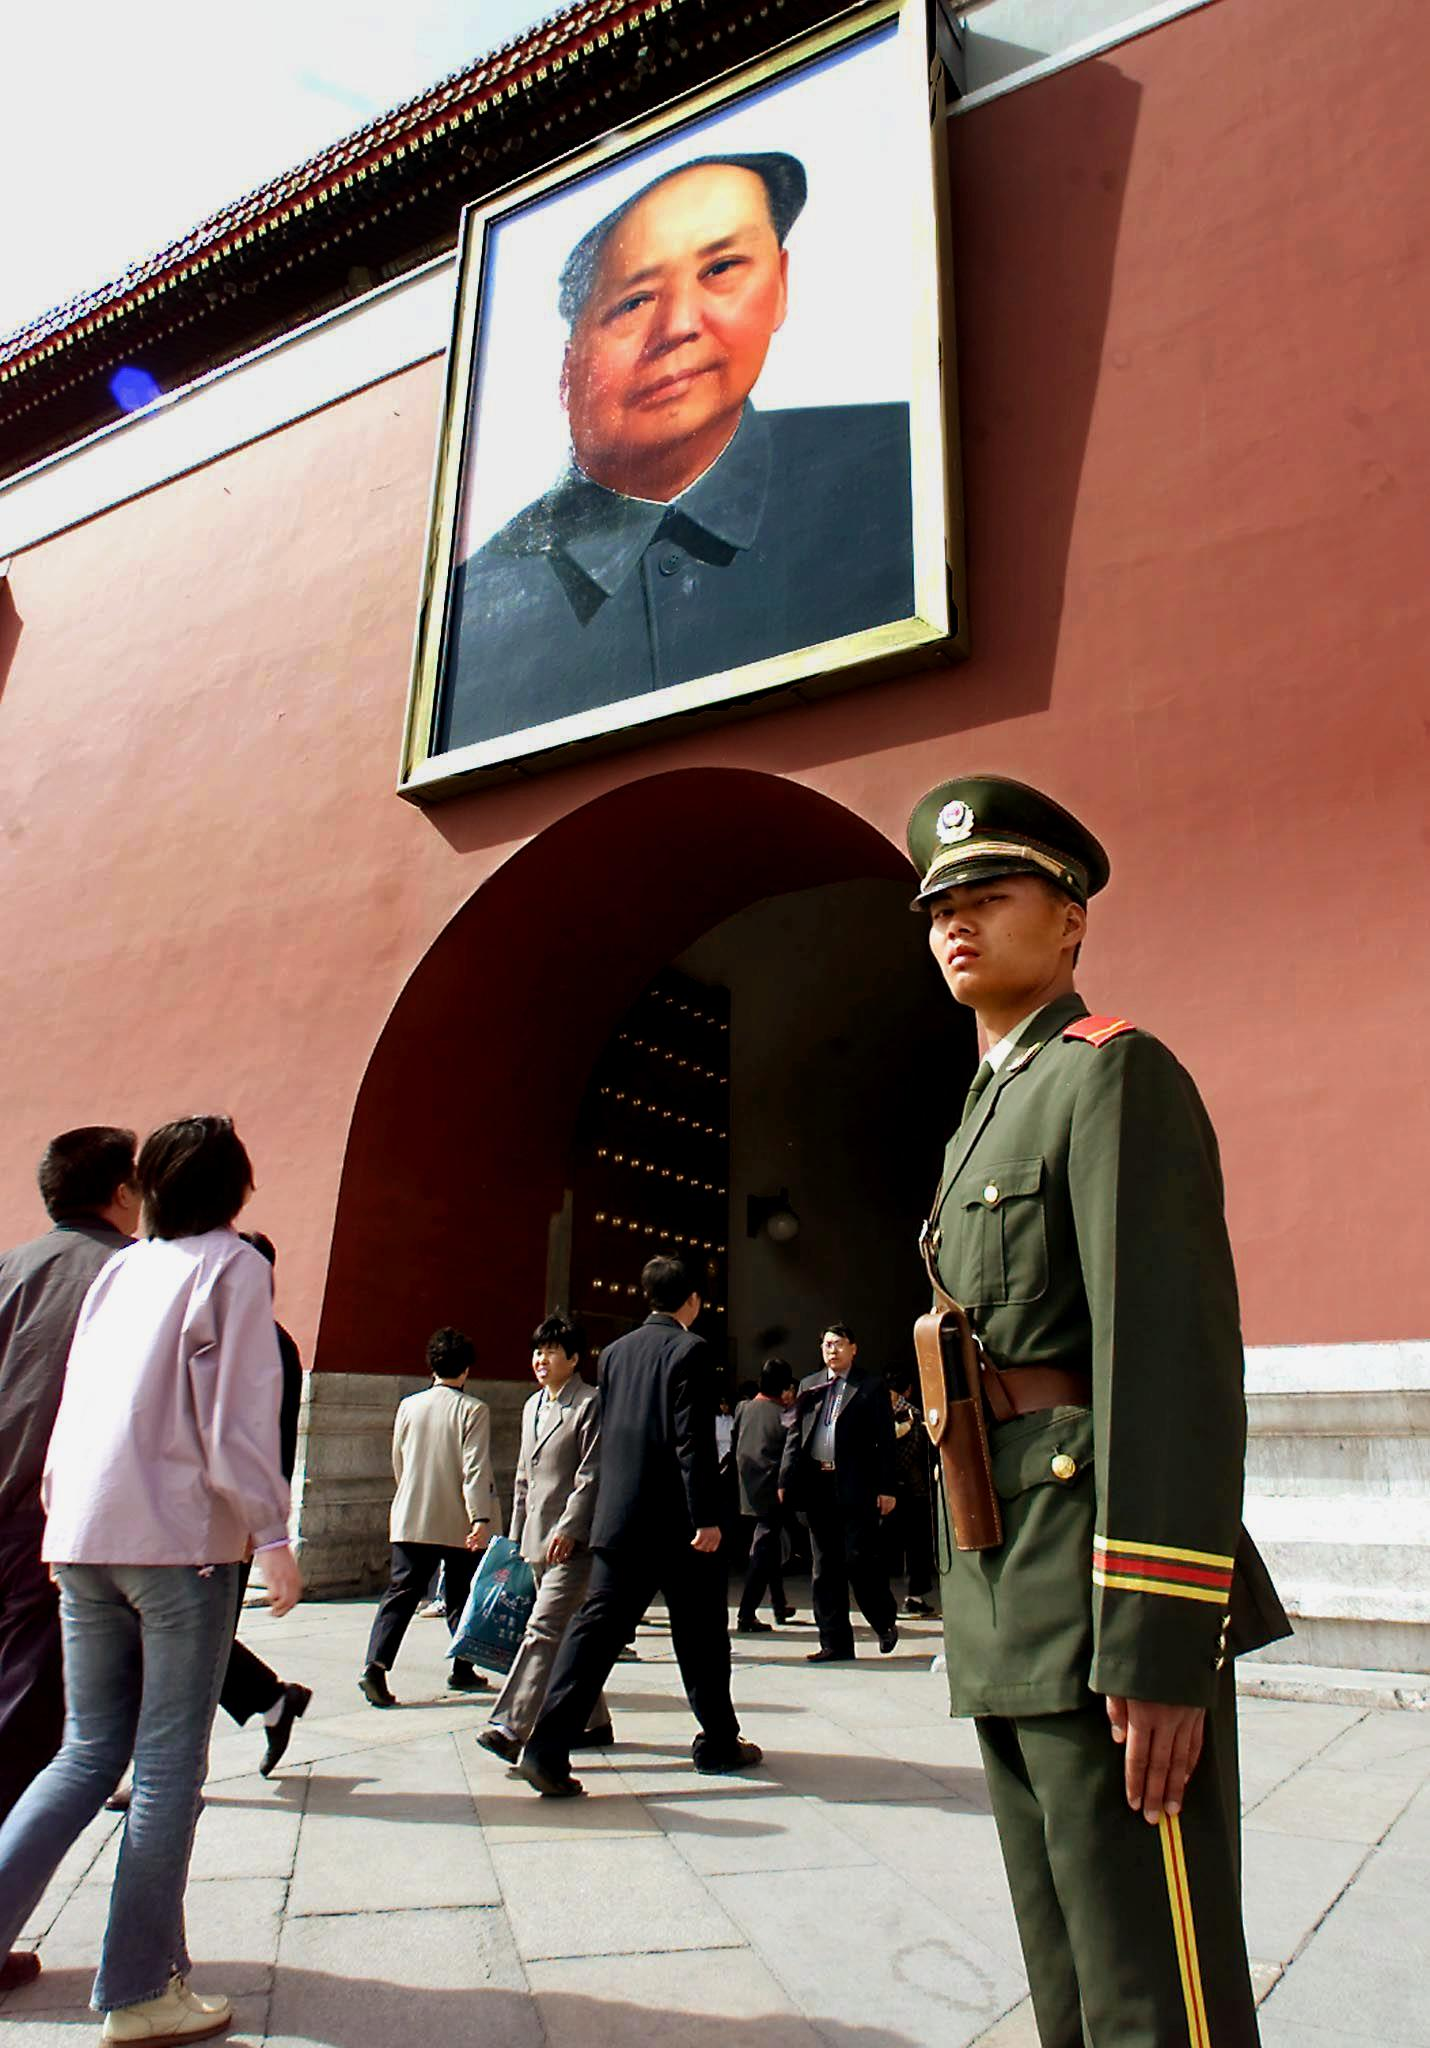 A policeman stands guard in front of the Tiananmen Gate with the portrait of Mao Zedong in Beijing 24 April 2001, as police tightened security around Tiananmen Square to prevent followers of the outlawed Falungong spiritual group from protesting and possible self-immolation on the eve of the anniversary of the 25 April, 1999 demonstration. (GOH CHAI HIN/AFP via Getty Images)